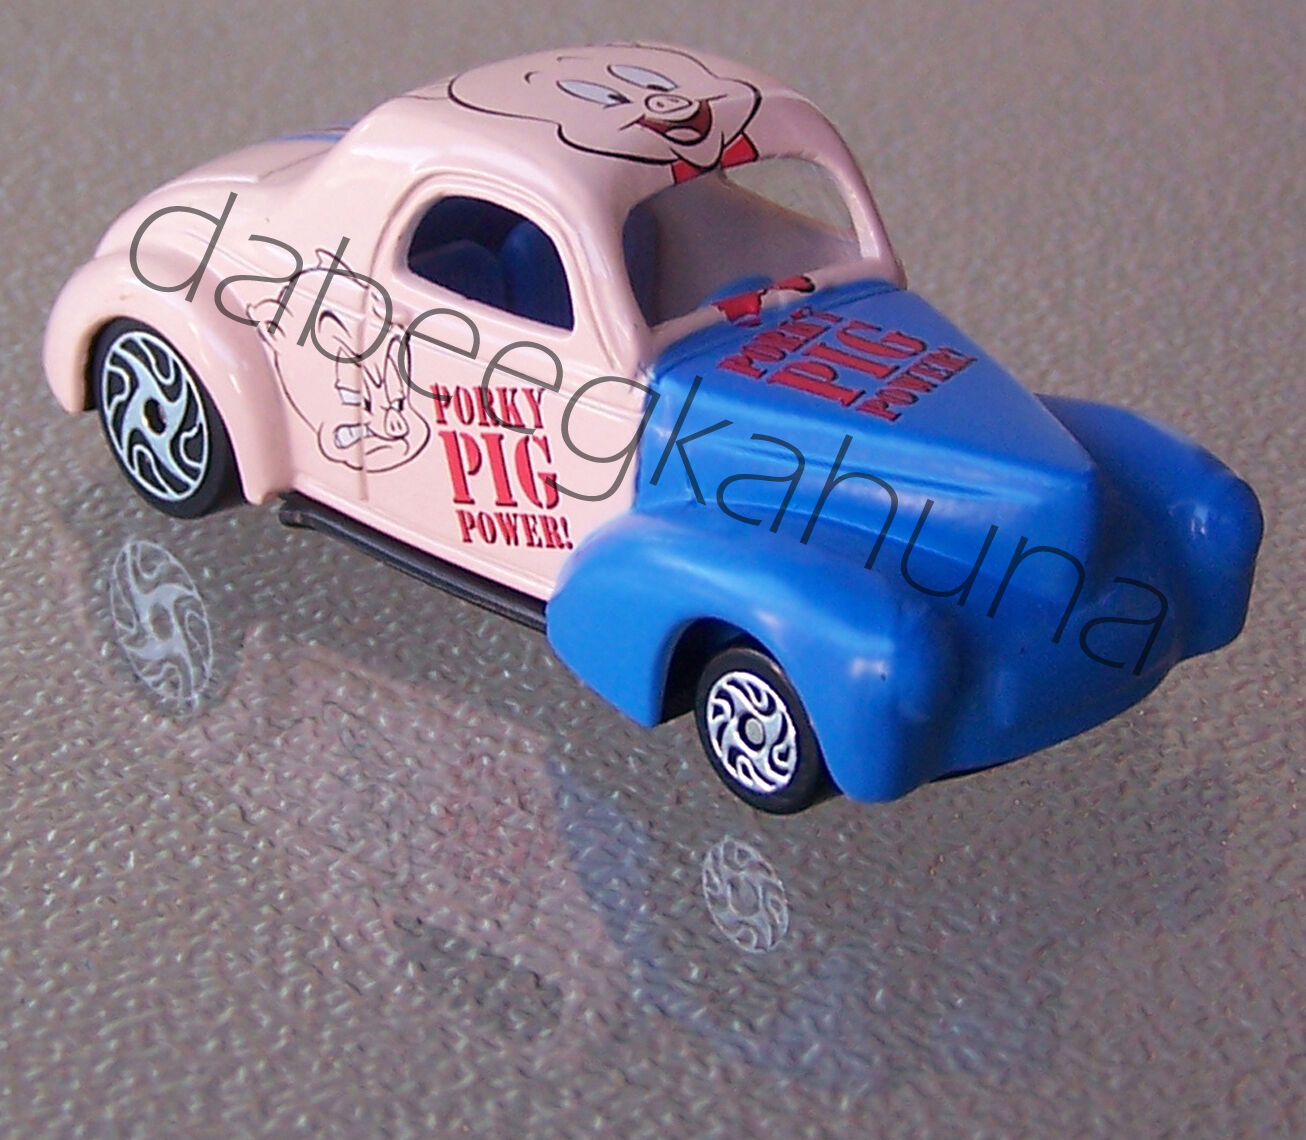 Racing Racing Racing Champions - 41 Willys - Porky Pig Power (New) Die-Cast 99e0f6